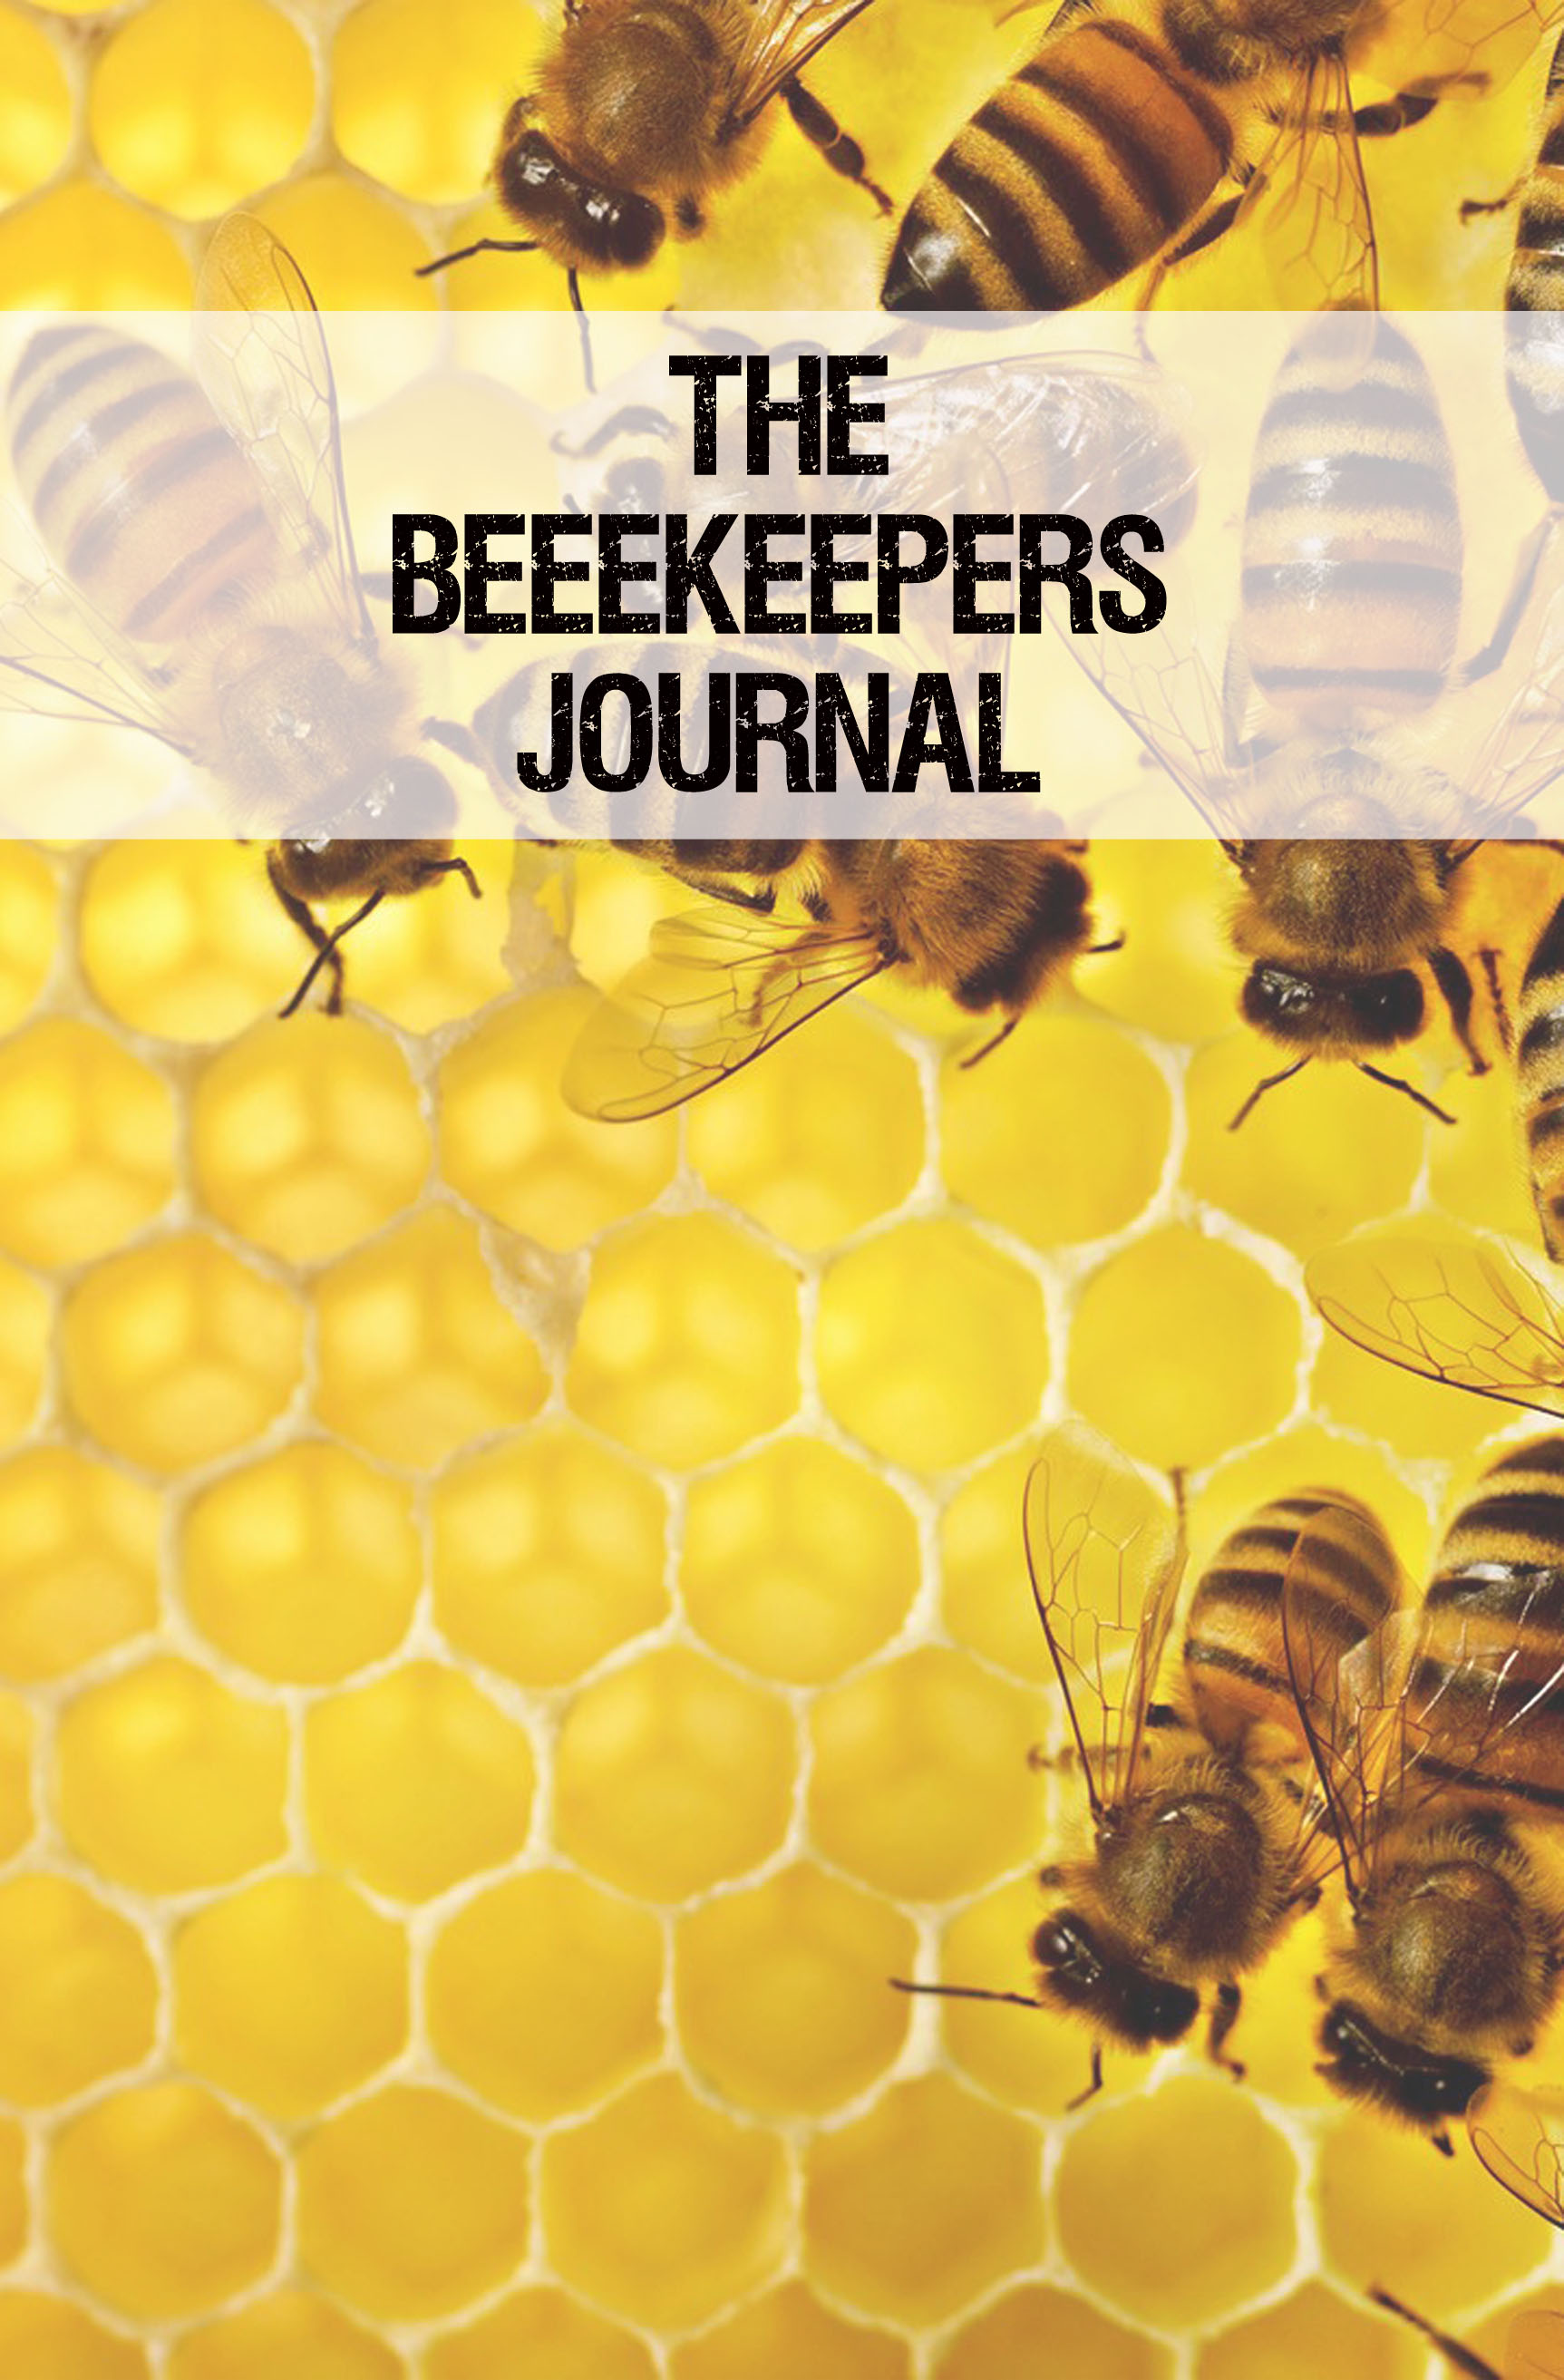 The Beekeepers Journal .jpg